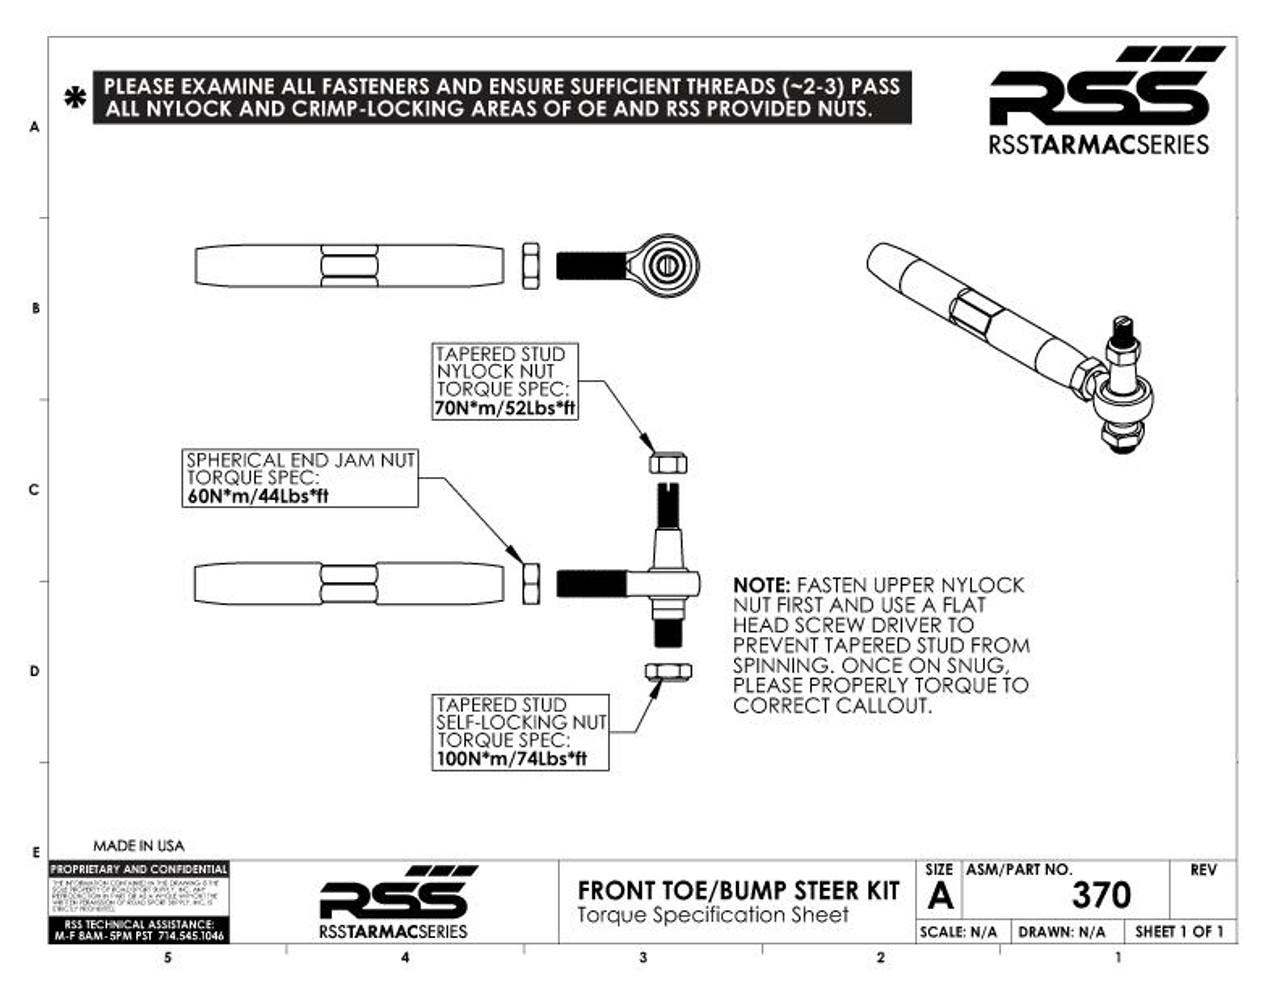 RSS Front Bump/Toe Steer - Outer Ball Joint Pin Rebuild Kit: Includes- 1x Tapered Stud, 1 x Upper Lock Nut, 1 x Lower Lock Nut, 2 x Stud Spacers/Washers. USER NOTE: A new 382 Kit should be installed once ball joint pin has been removed from hub. (Fits Part # 370 + 371).